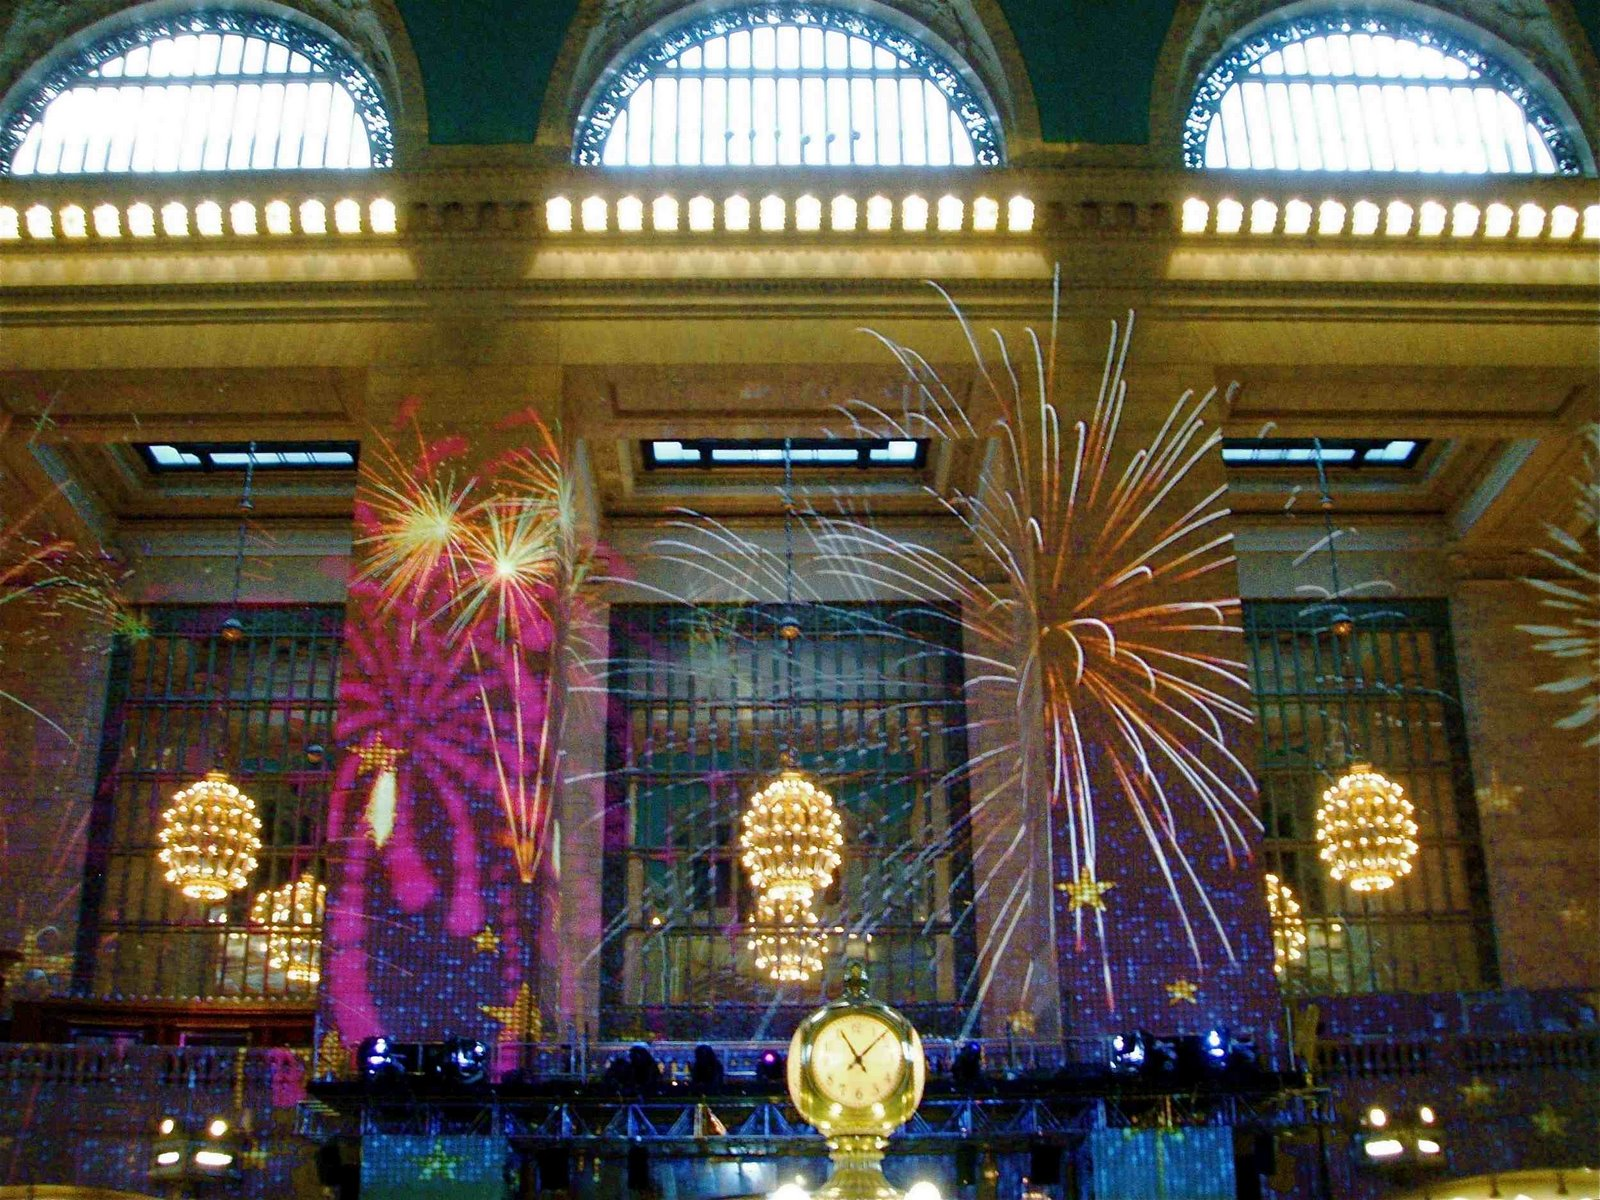 NYC ♥ NYC: KALEIDOSCOPE LIGHT SHOW at GRAND CENTRAL STATION